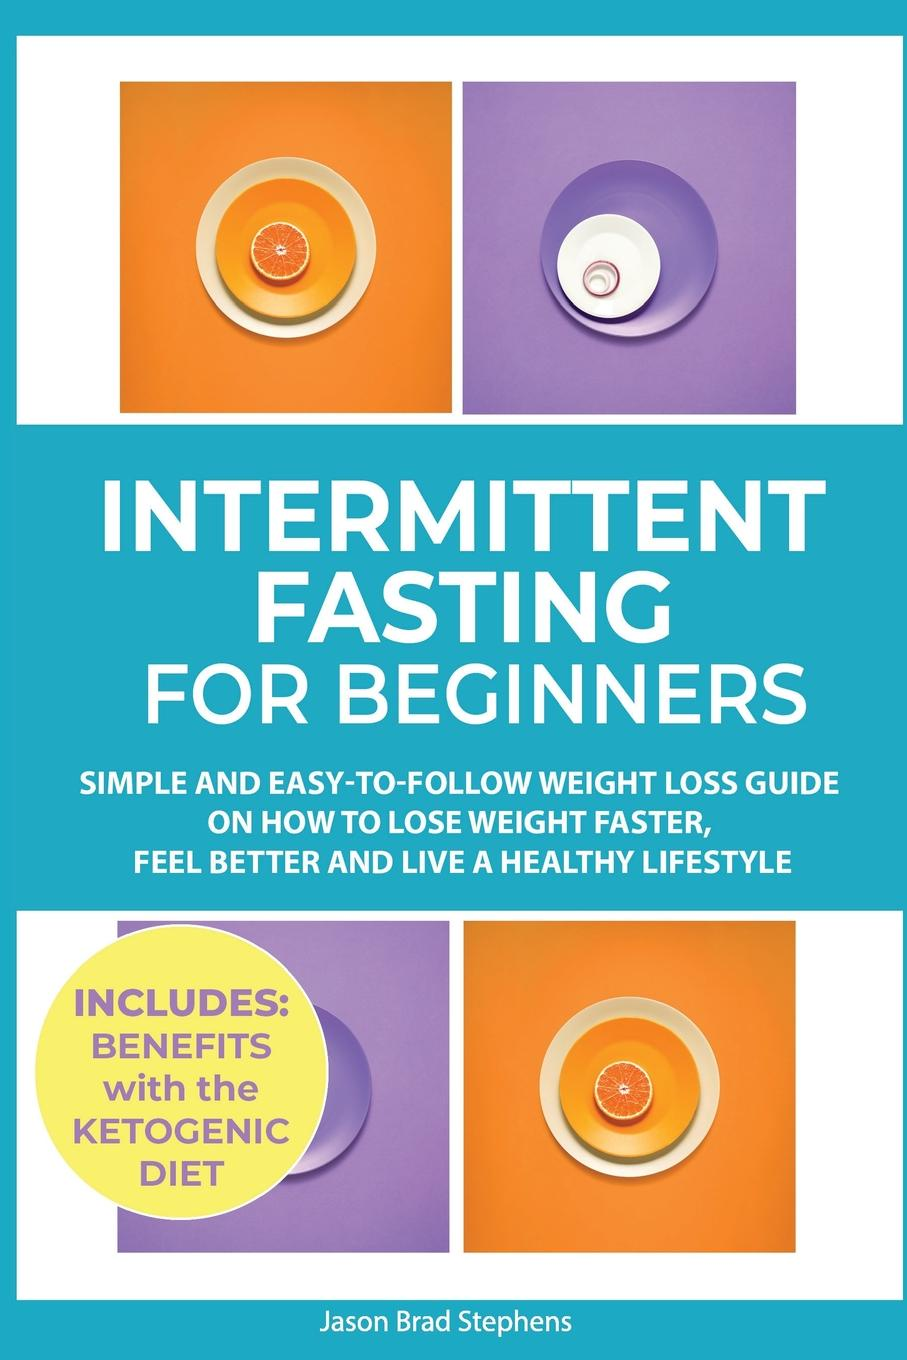 Jason Brad Stephens Intermittent Fasting for Beginners. Simple and Easy-to-Follow Weight Loss Guide on How to Lose Faster, Feel Better Live a Healthy Lifestyle. (PLUS: Benefits with Ketogenic Diet)